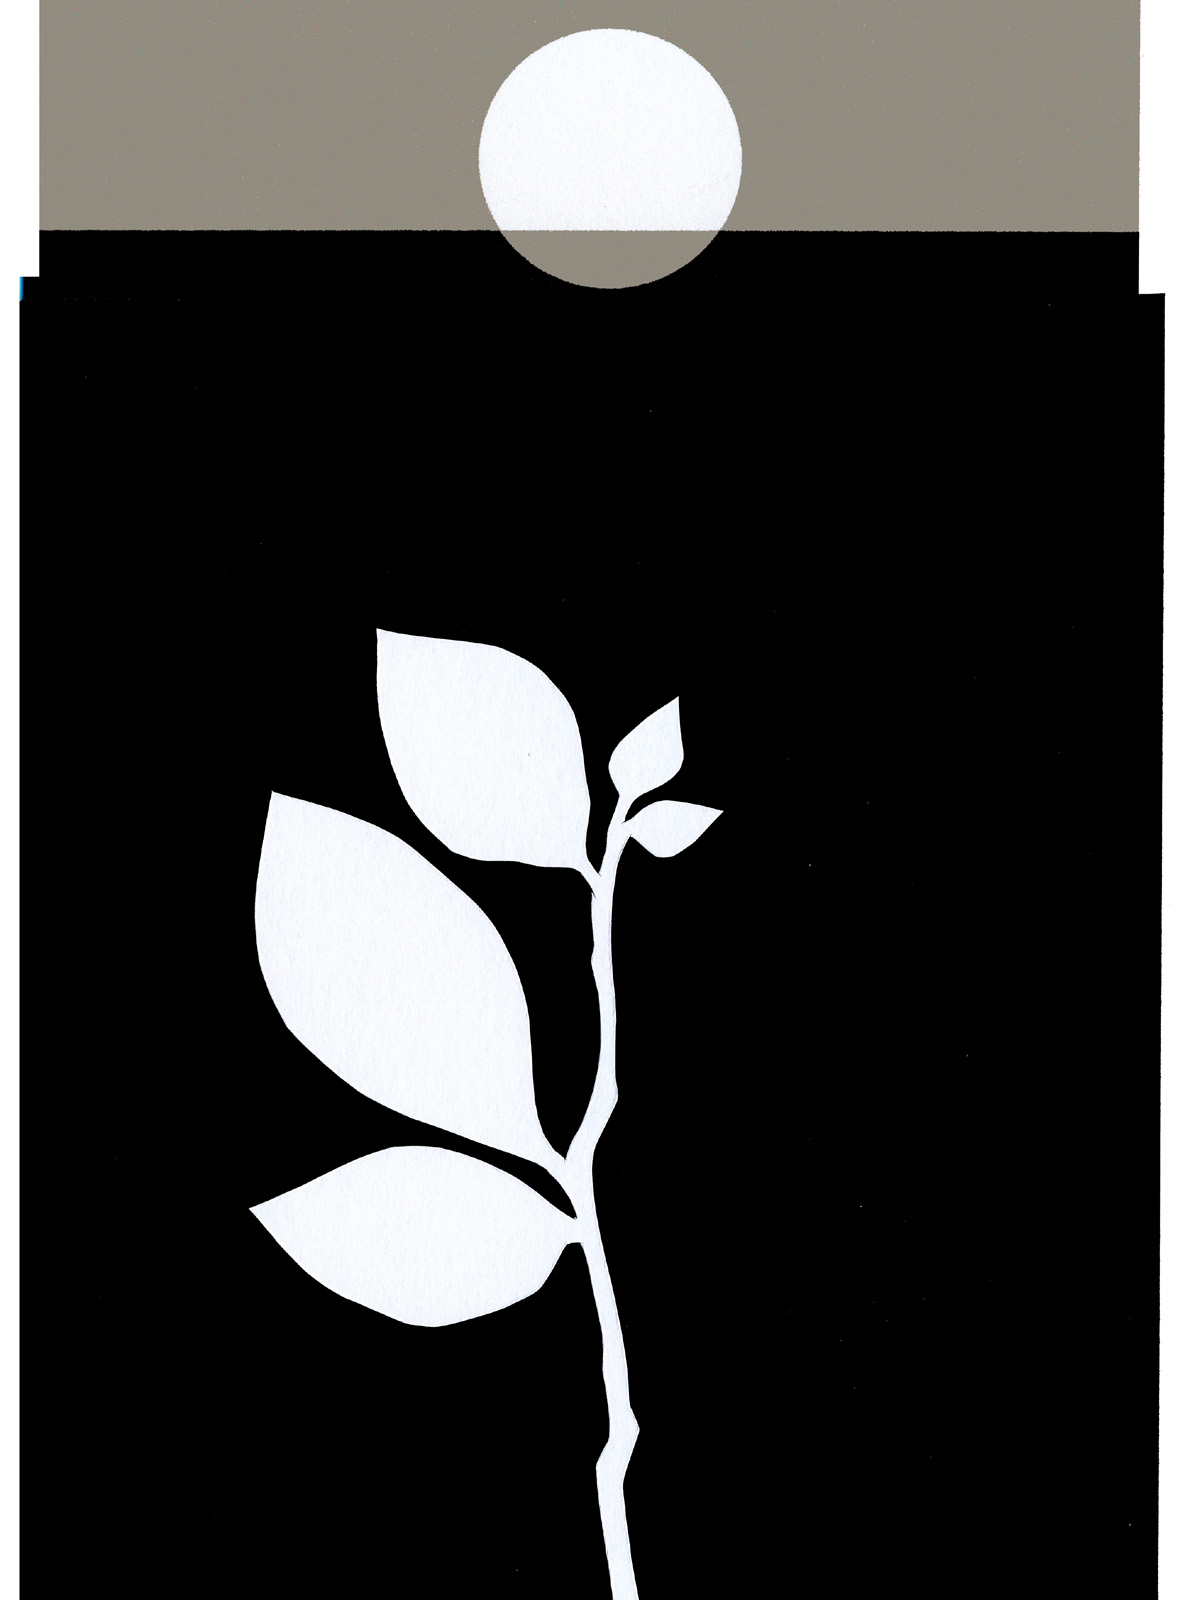 New Dawn, cut paper collage, Mike Tedder